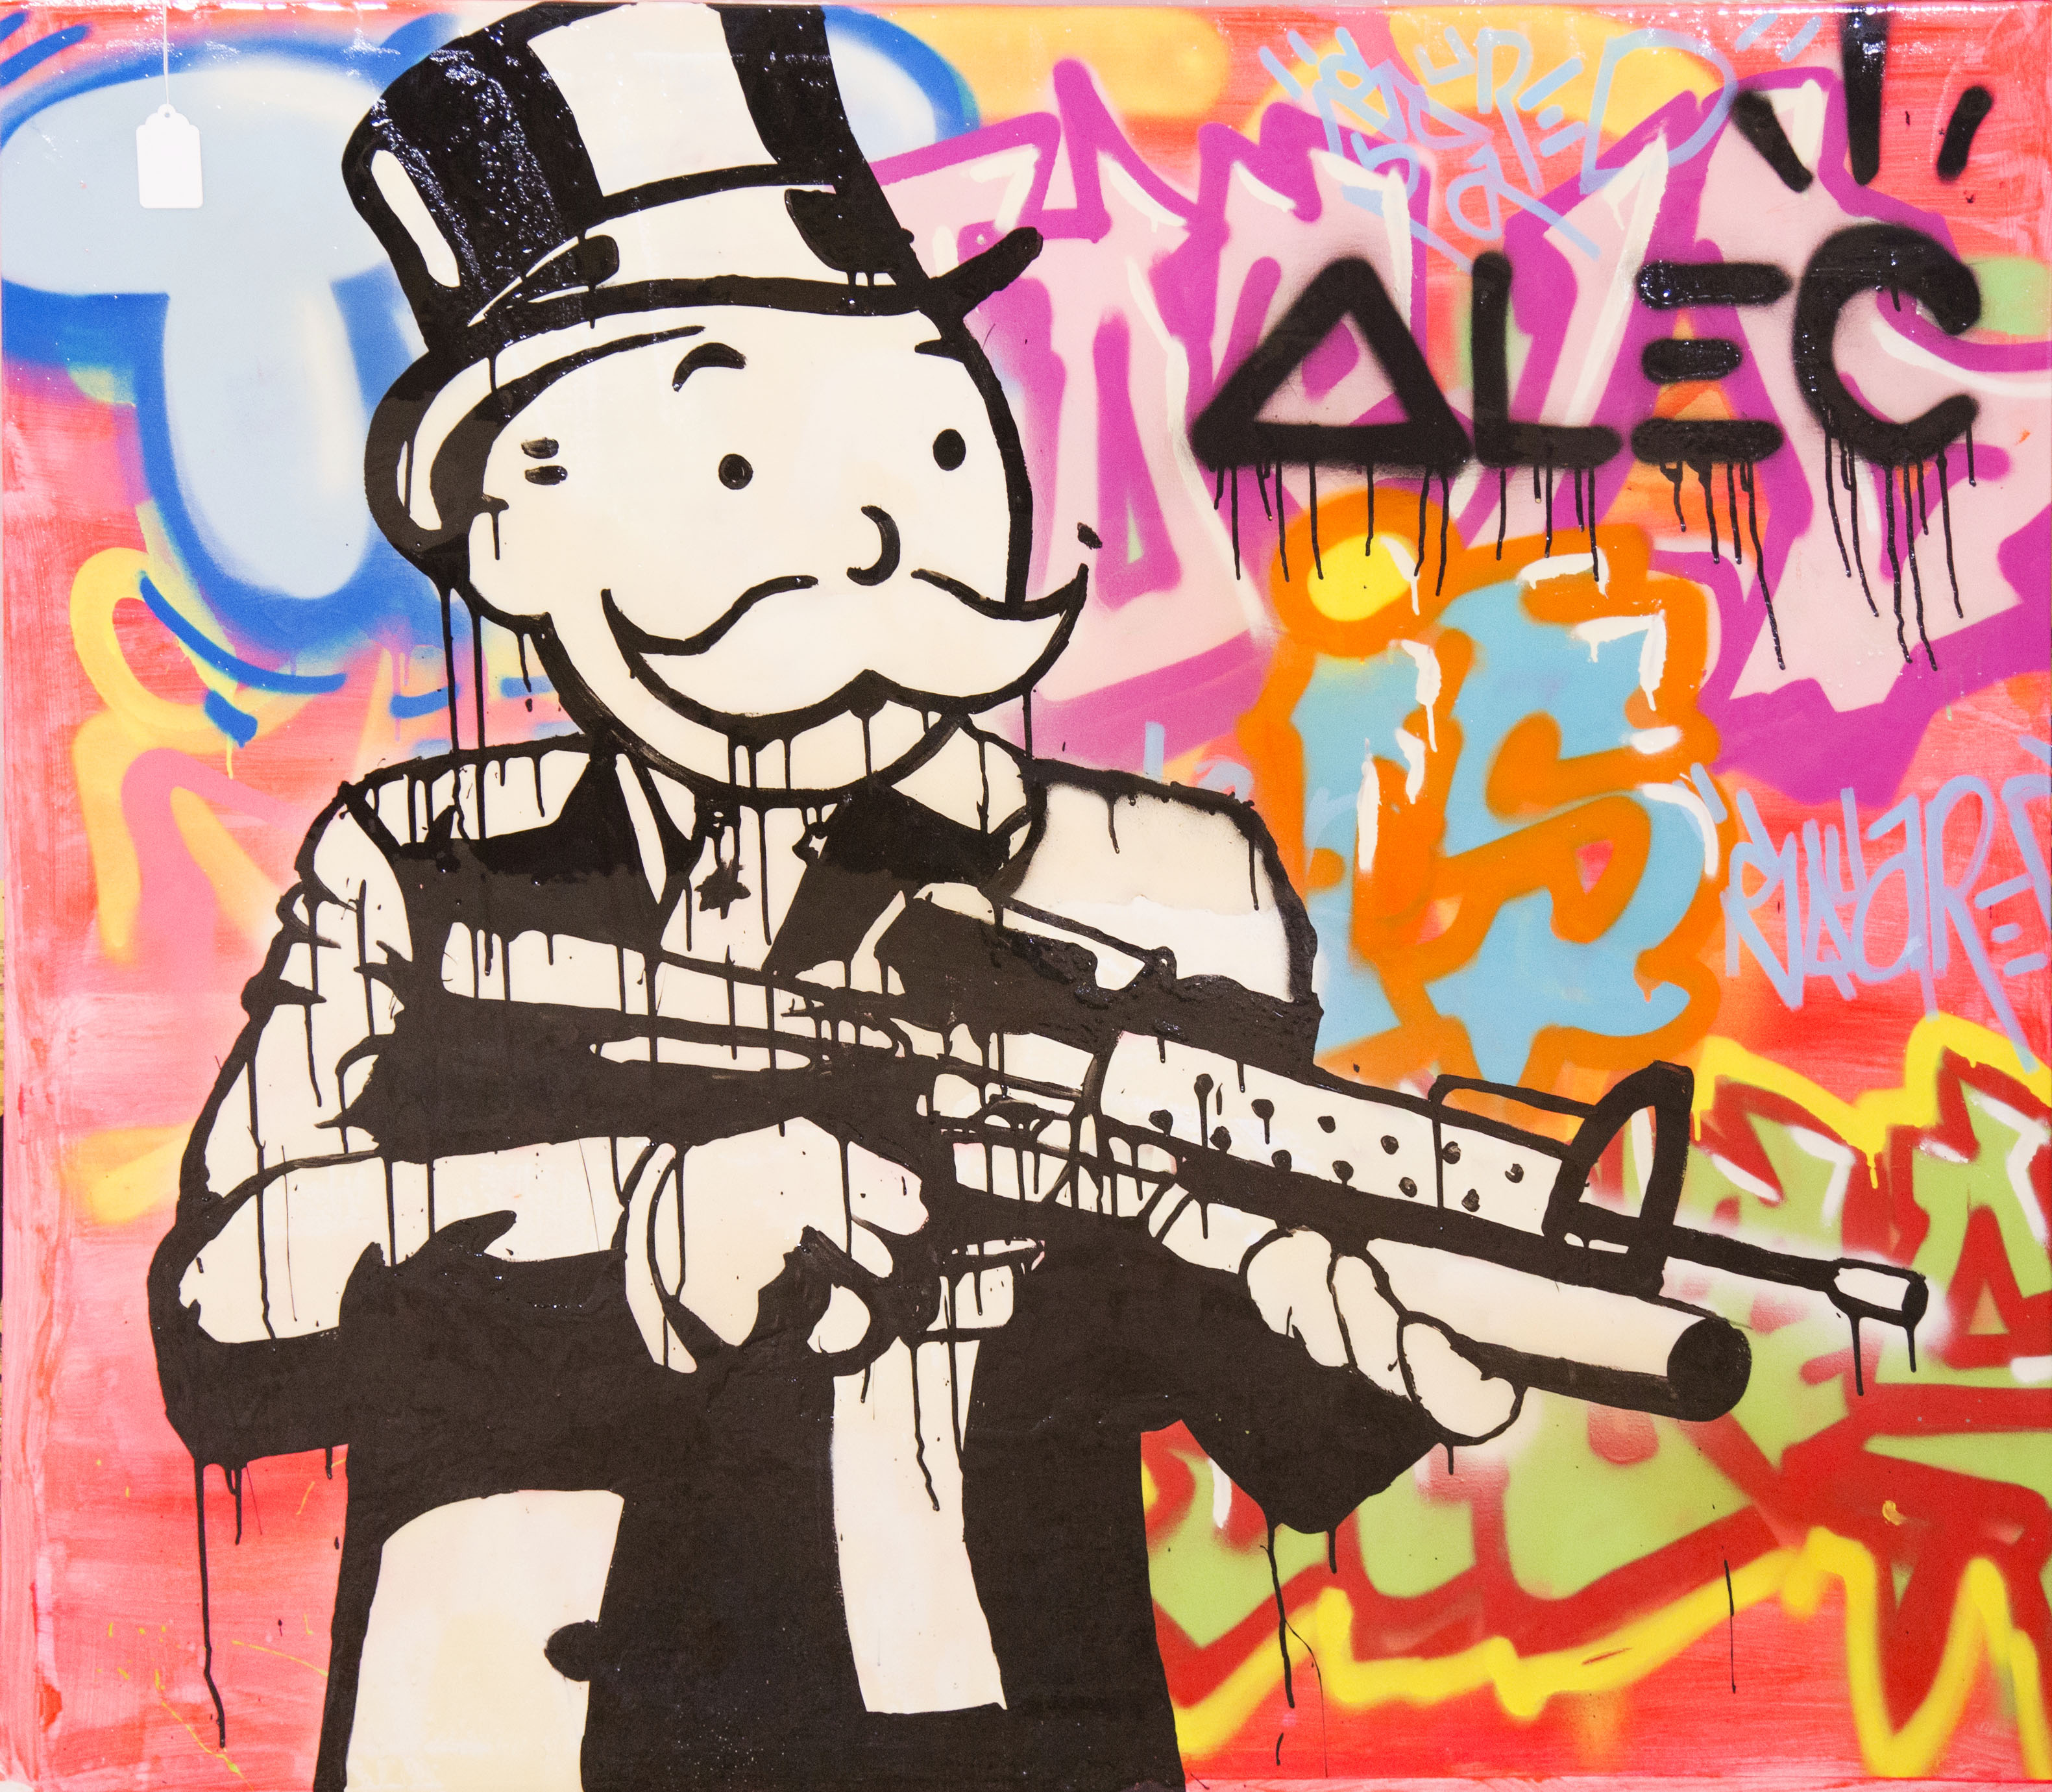 Assault Rifle by Alec Monopoly